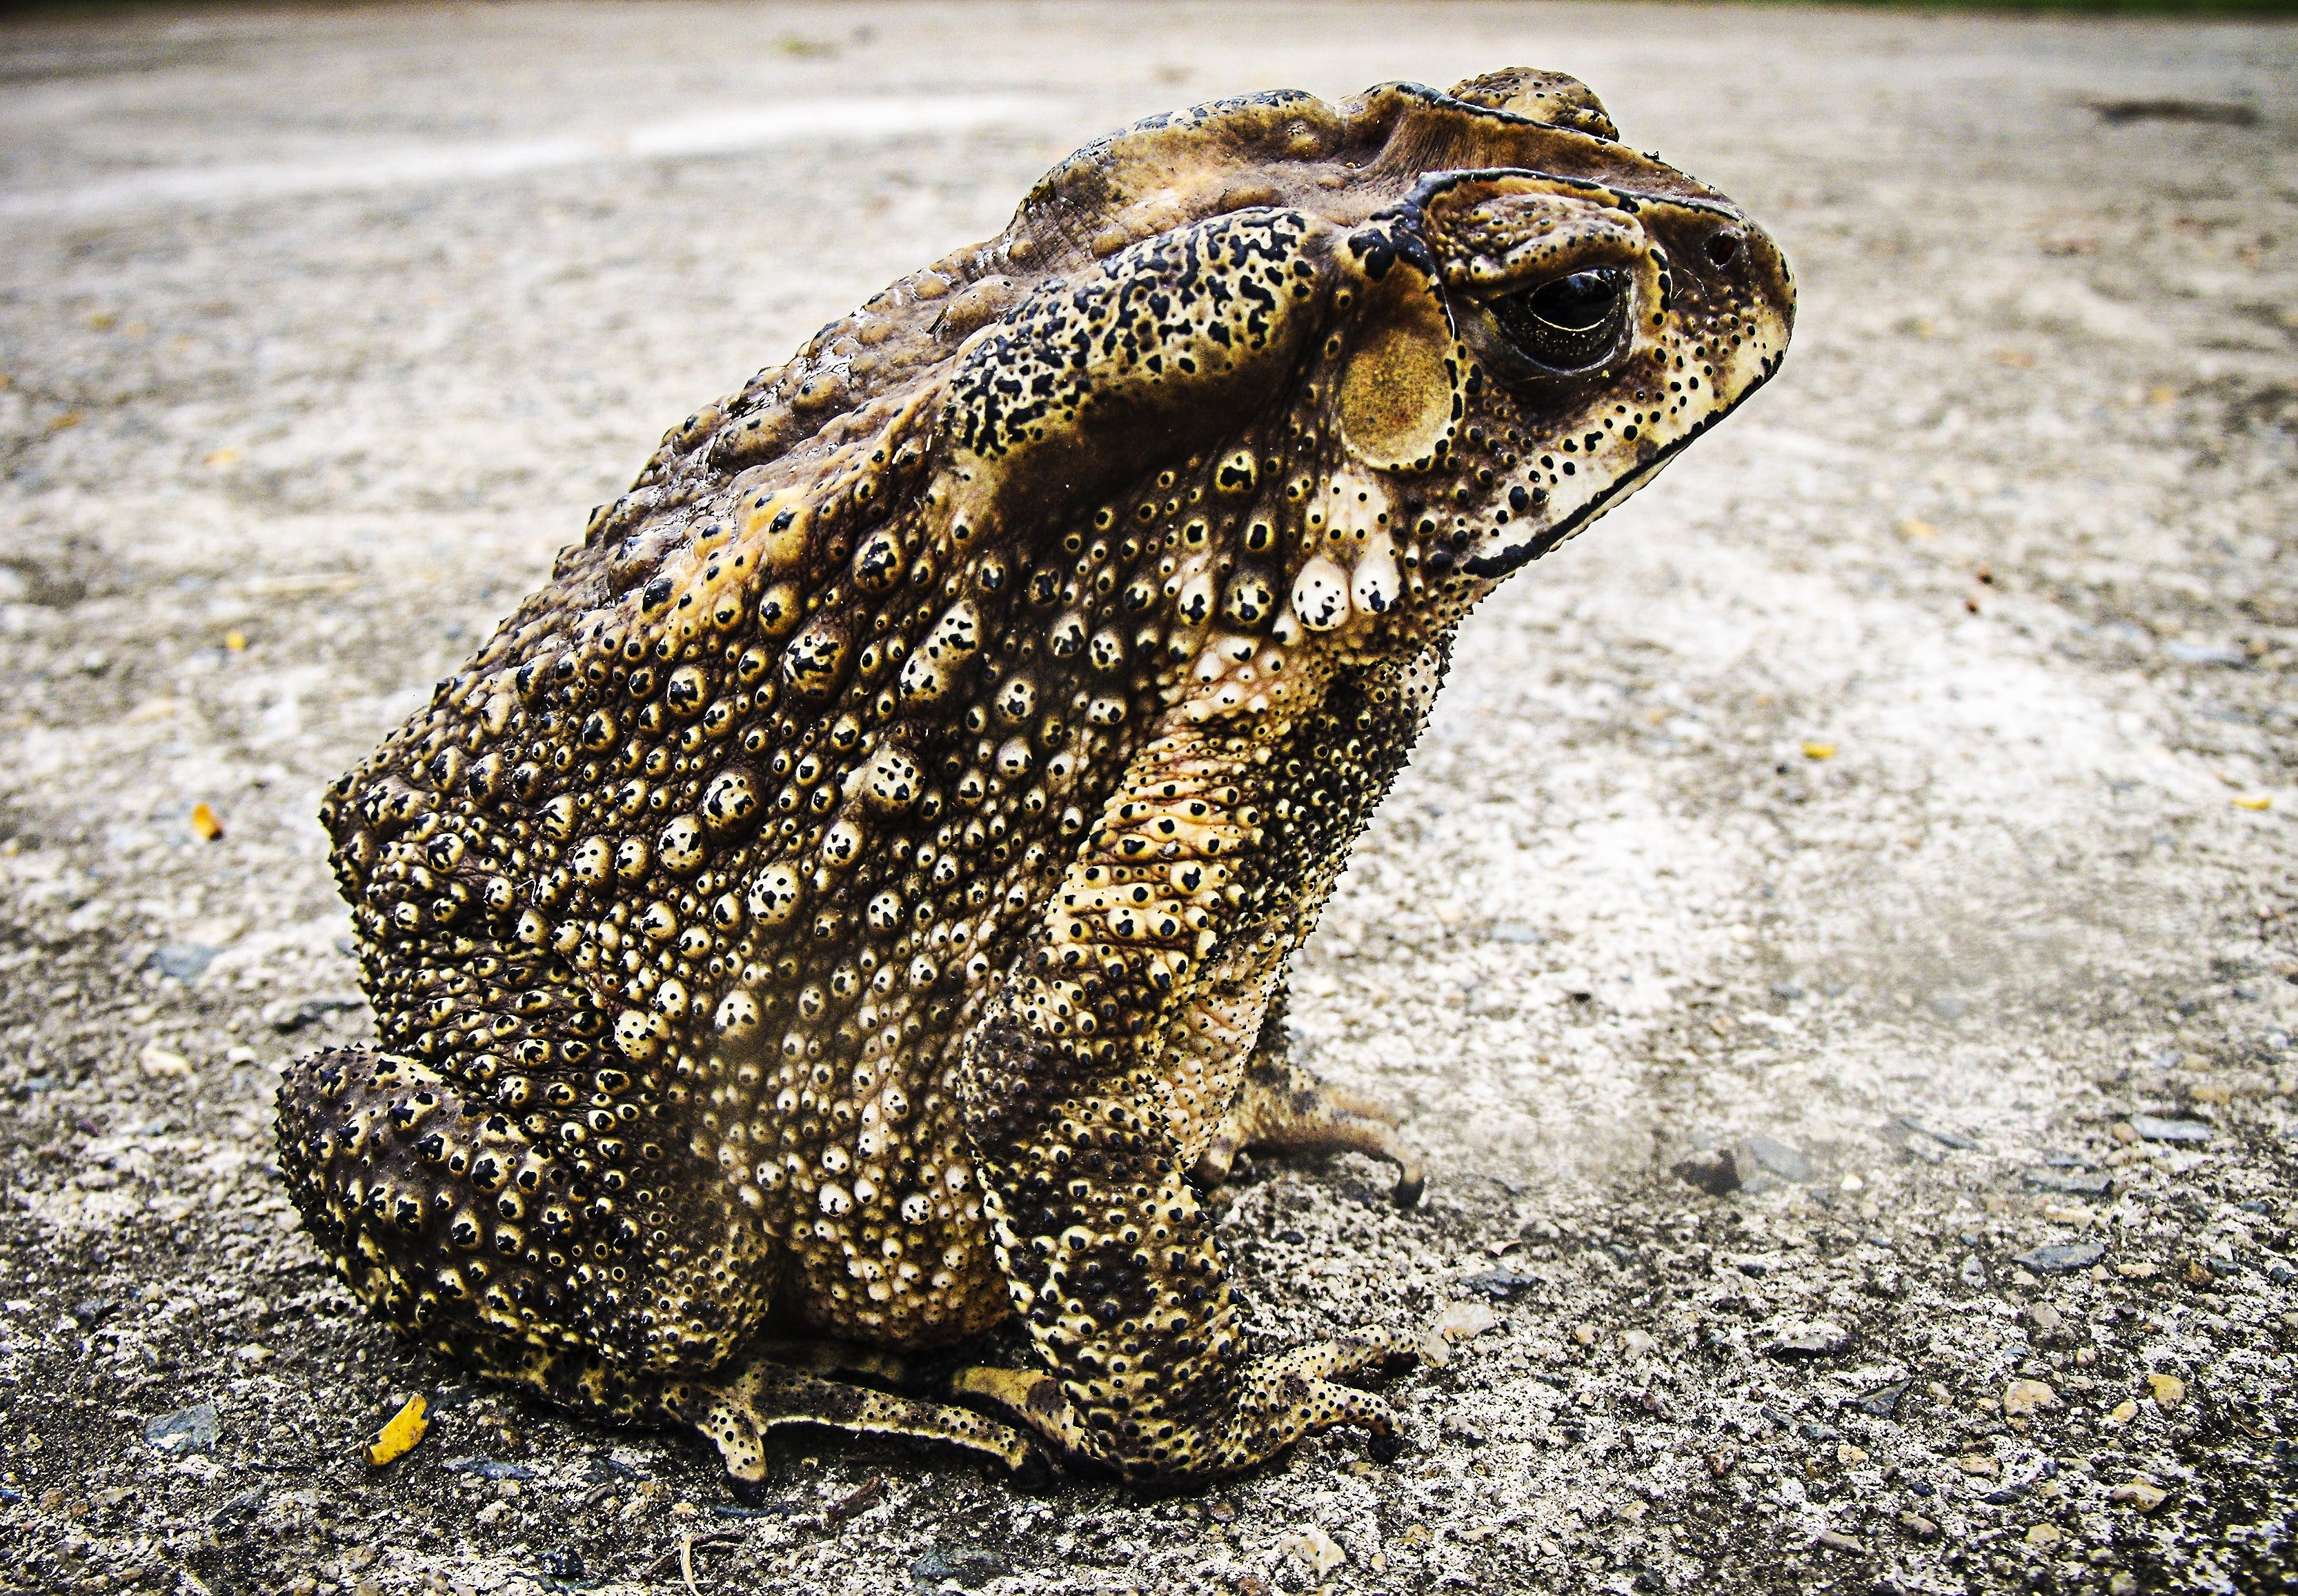 Black and Brown Frog Sitting on White Concrete Floor